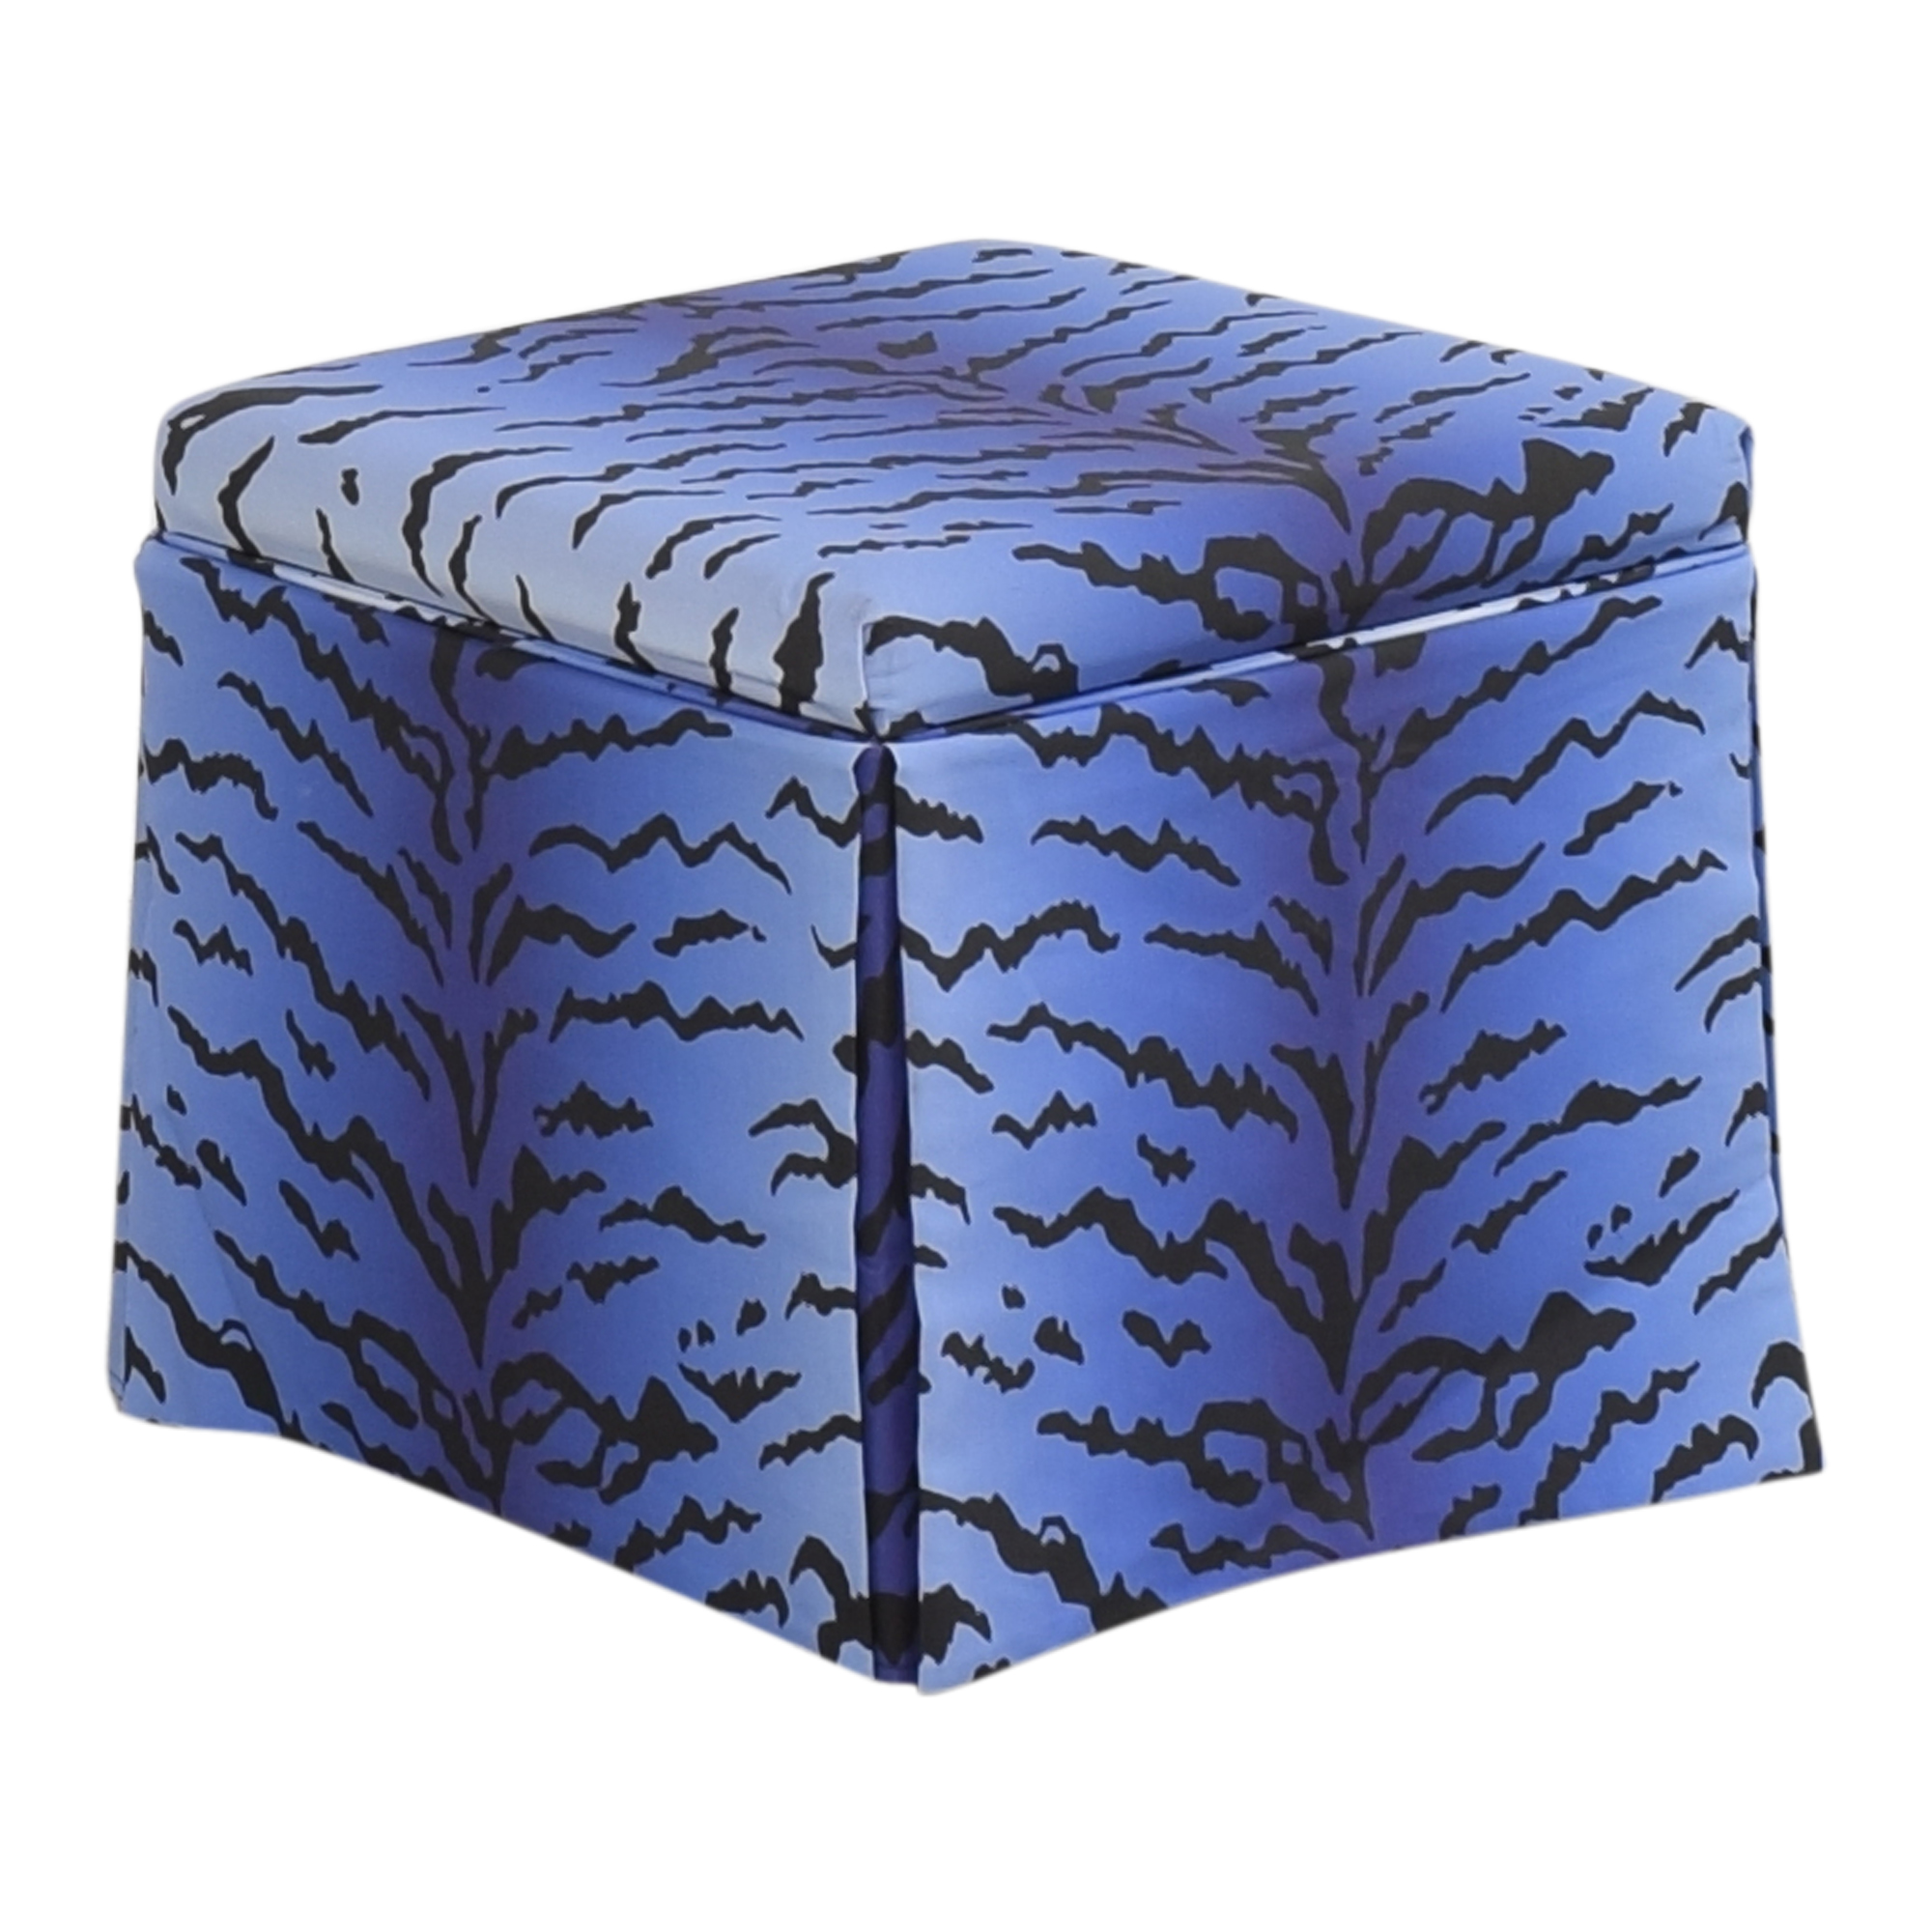 buy The Inside Royal Tiger Skirted Storage Ottoman The Inside